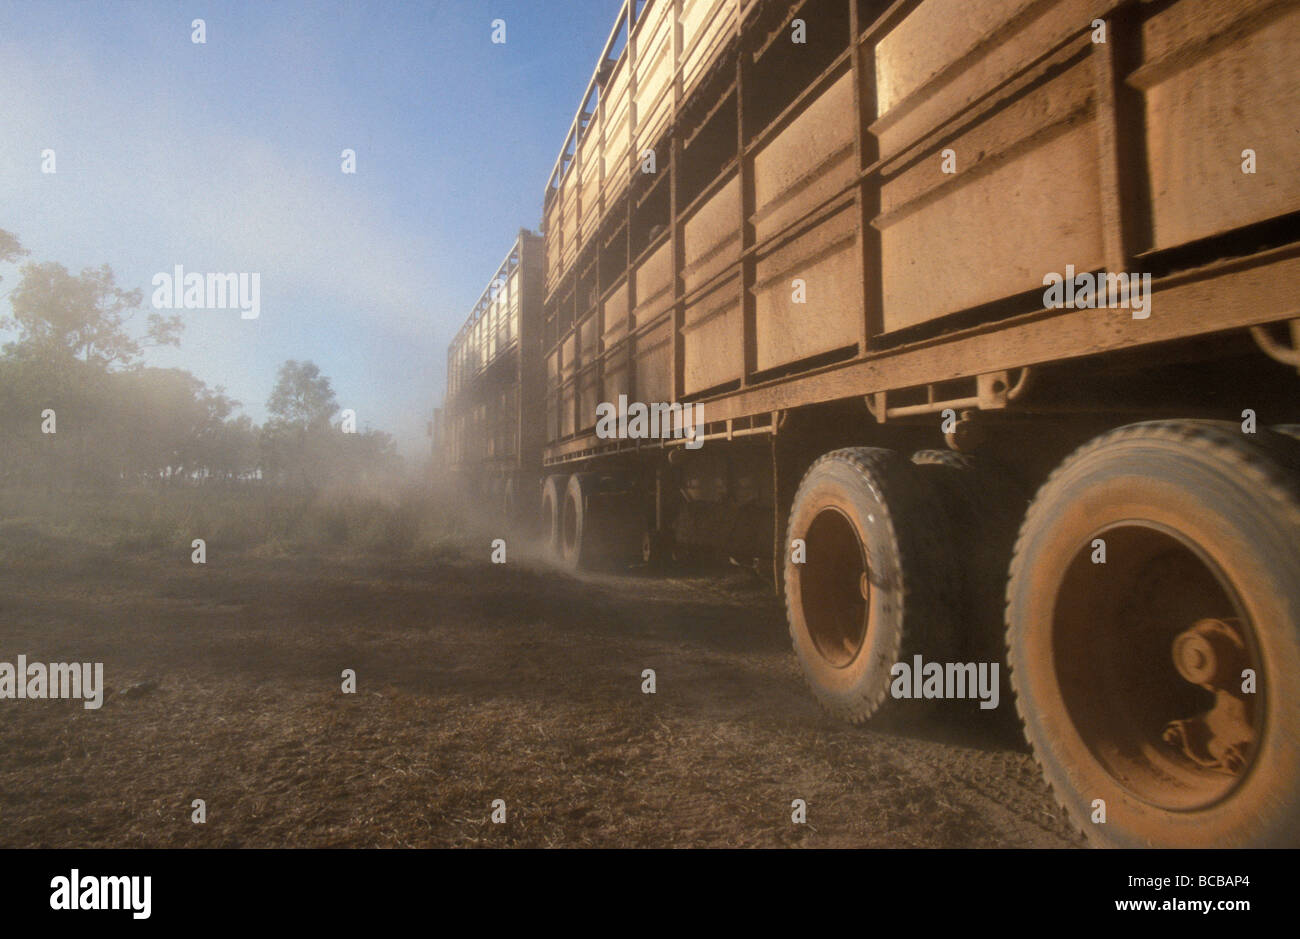 The wheels of a longhall road train churn up the dust in the outback. Stock Photo